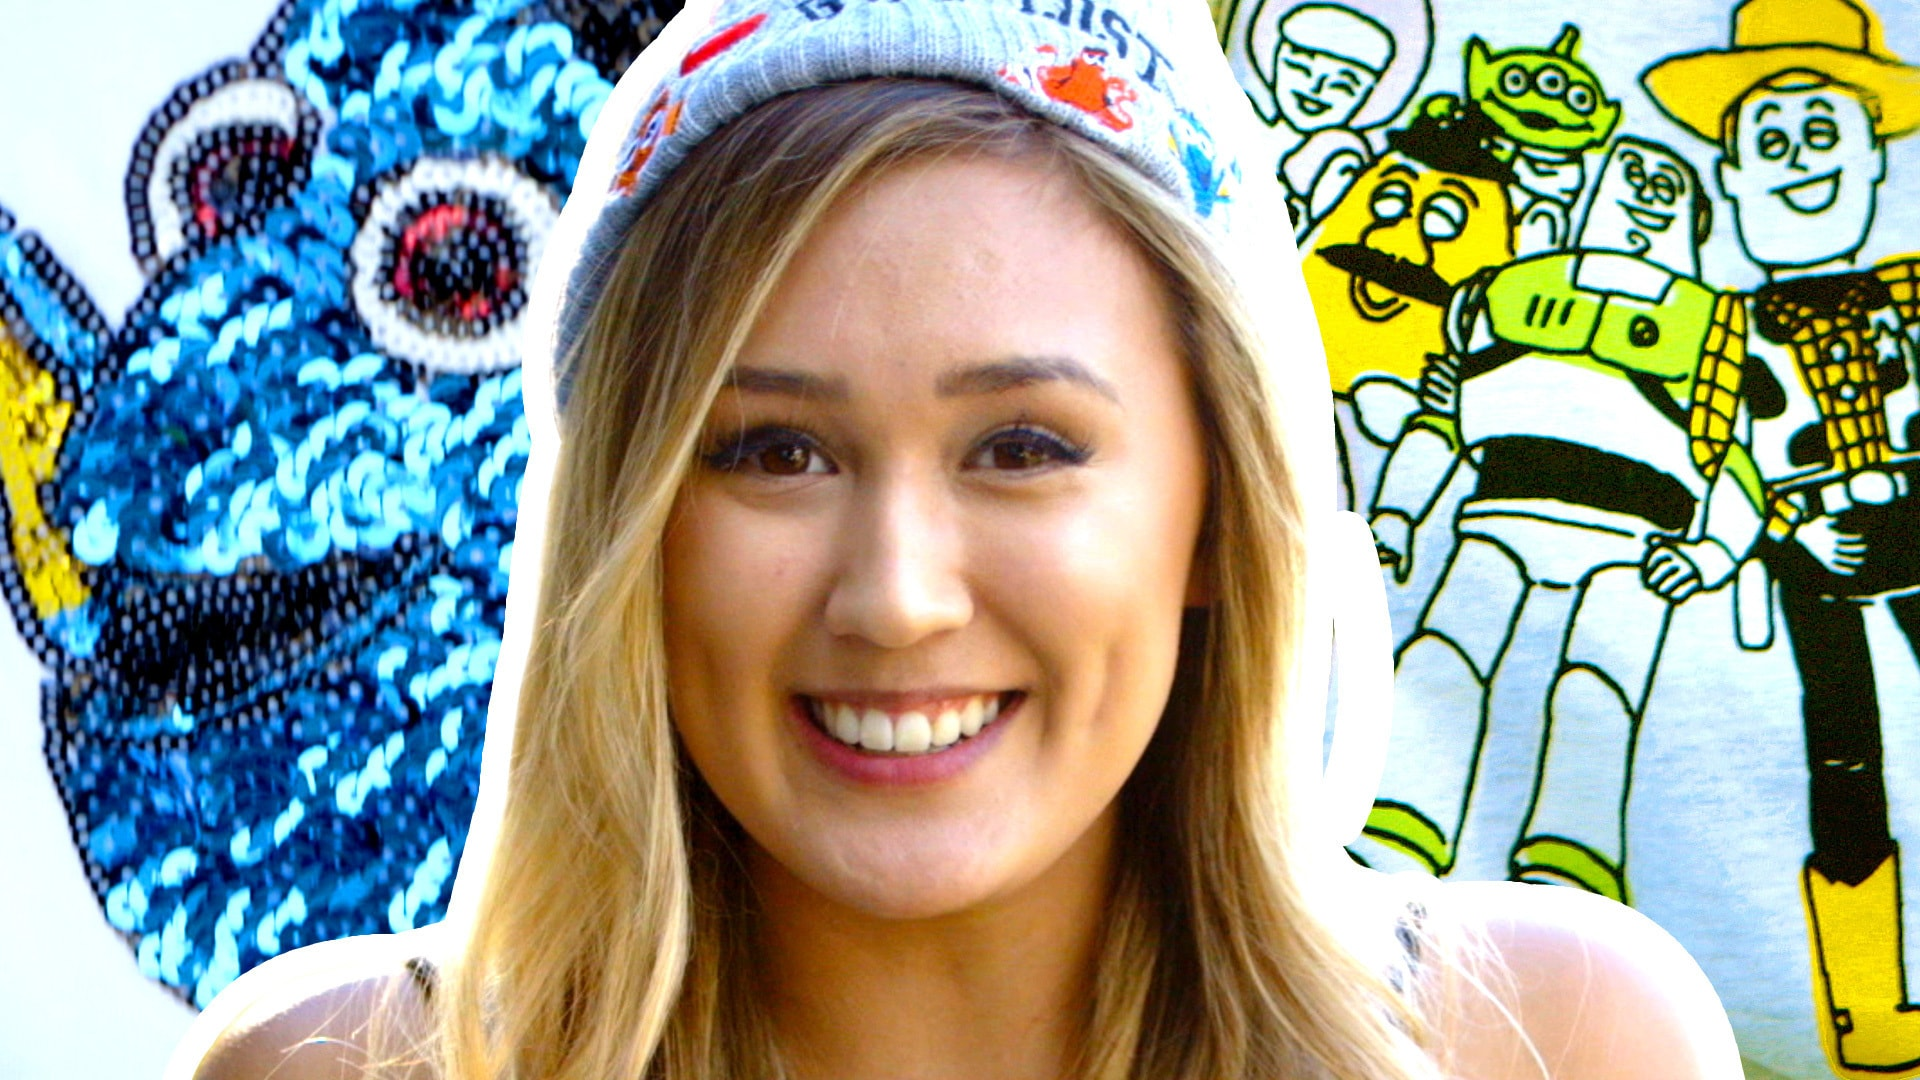 LaurDIY Discovers Disney•Pixar Style in Los Angeles | Episode 5 | Destination: Disney Style